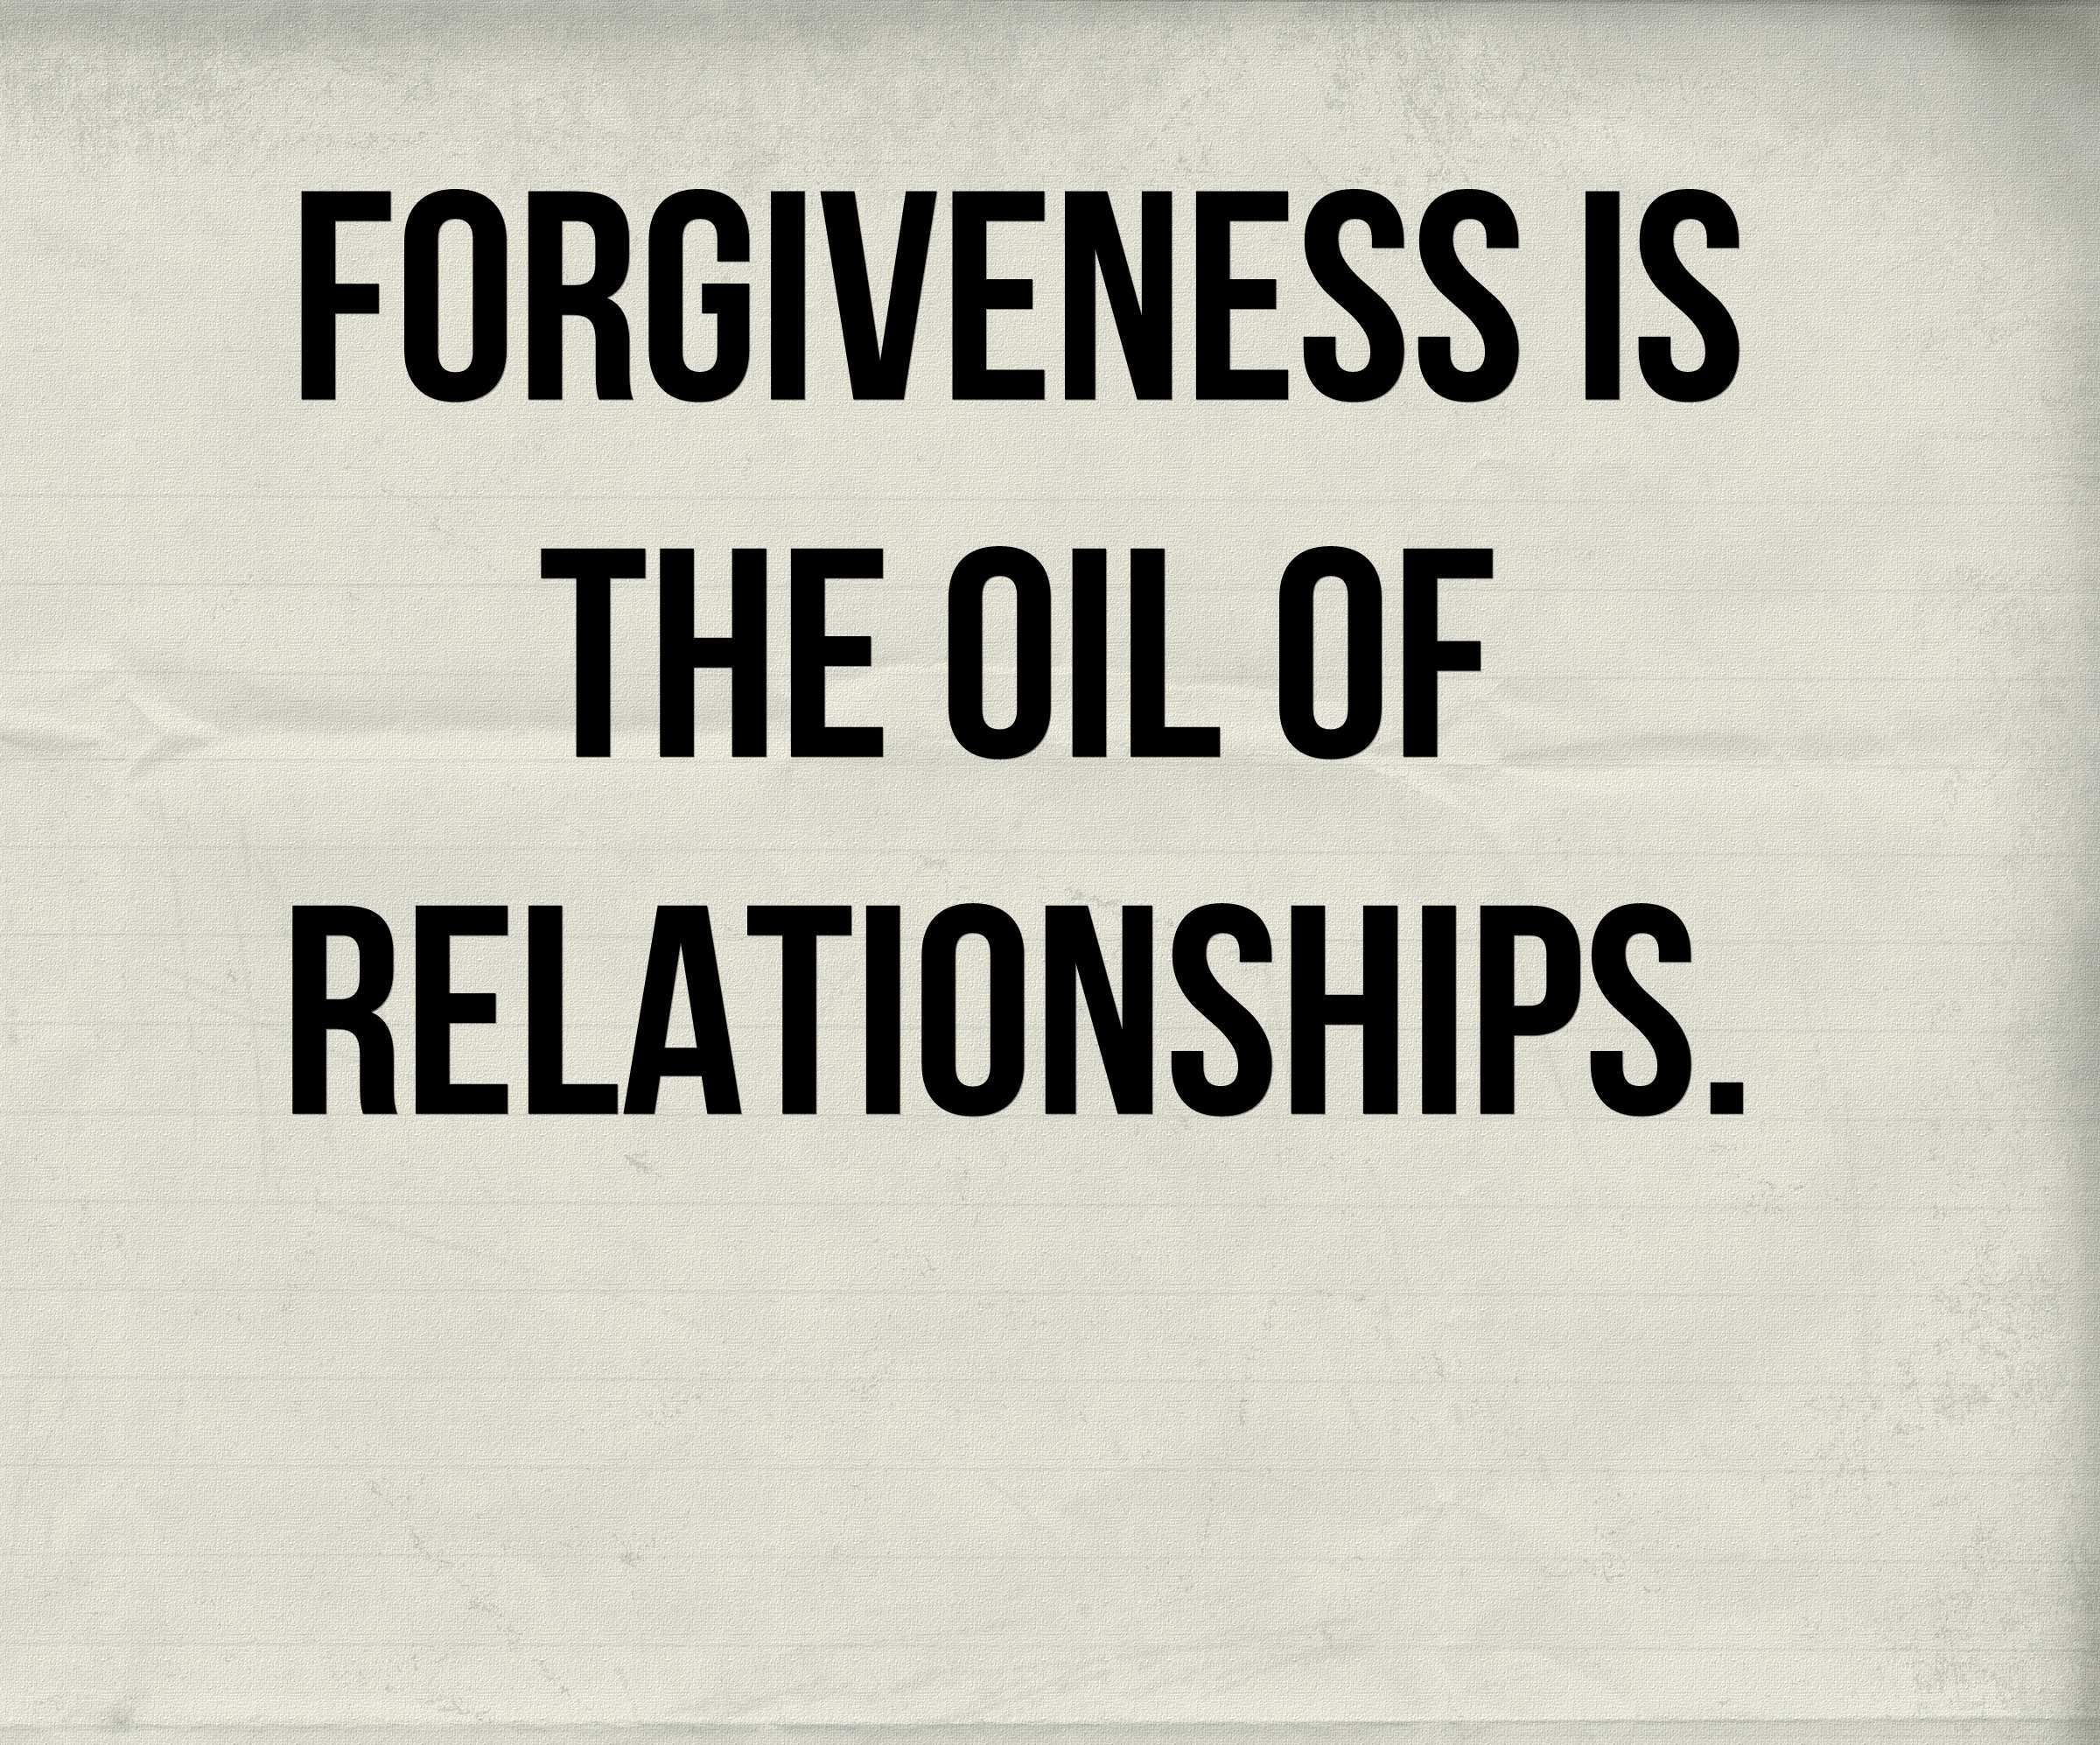 Quotes On Forgiveness Forgiveness Quotes Sayings Images Pics And Lines Power Of